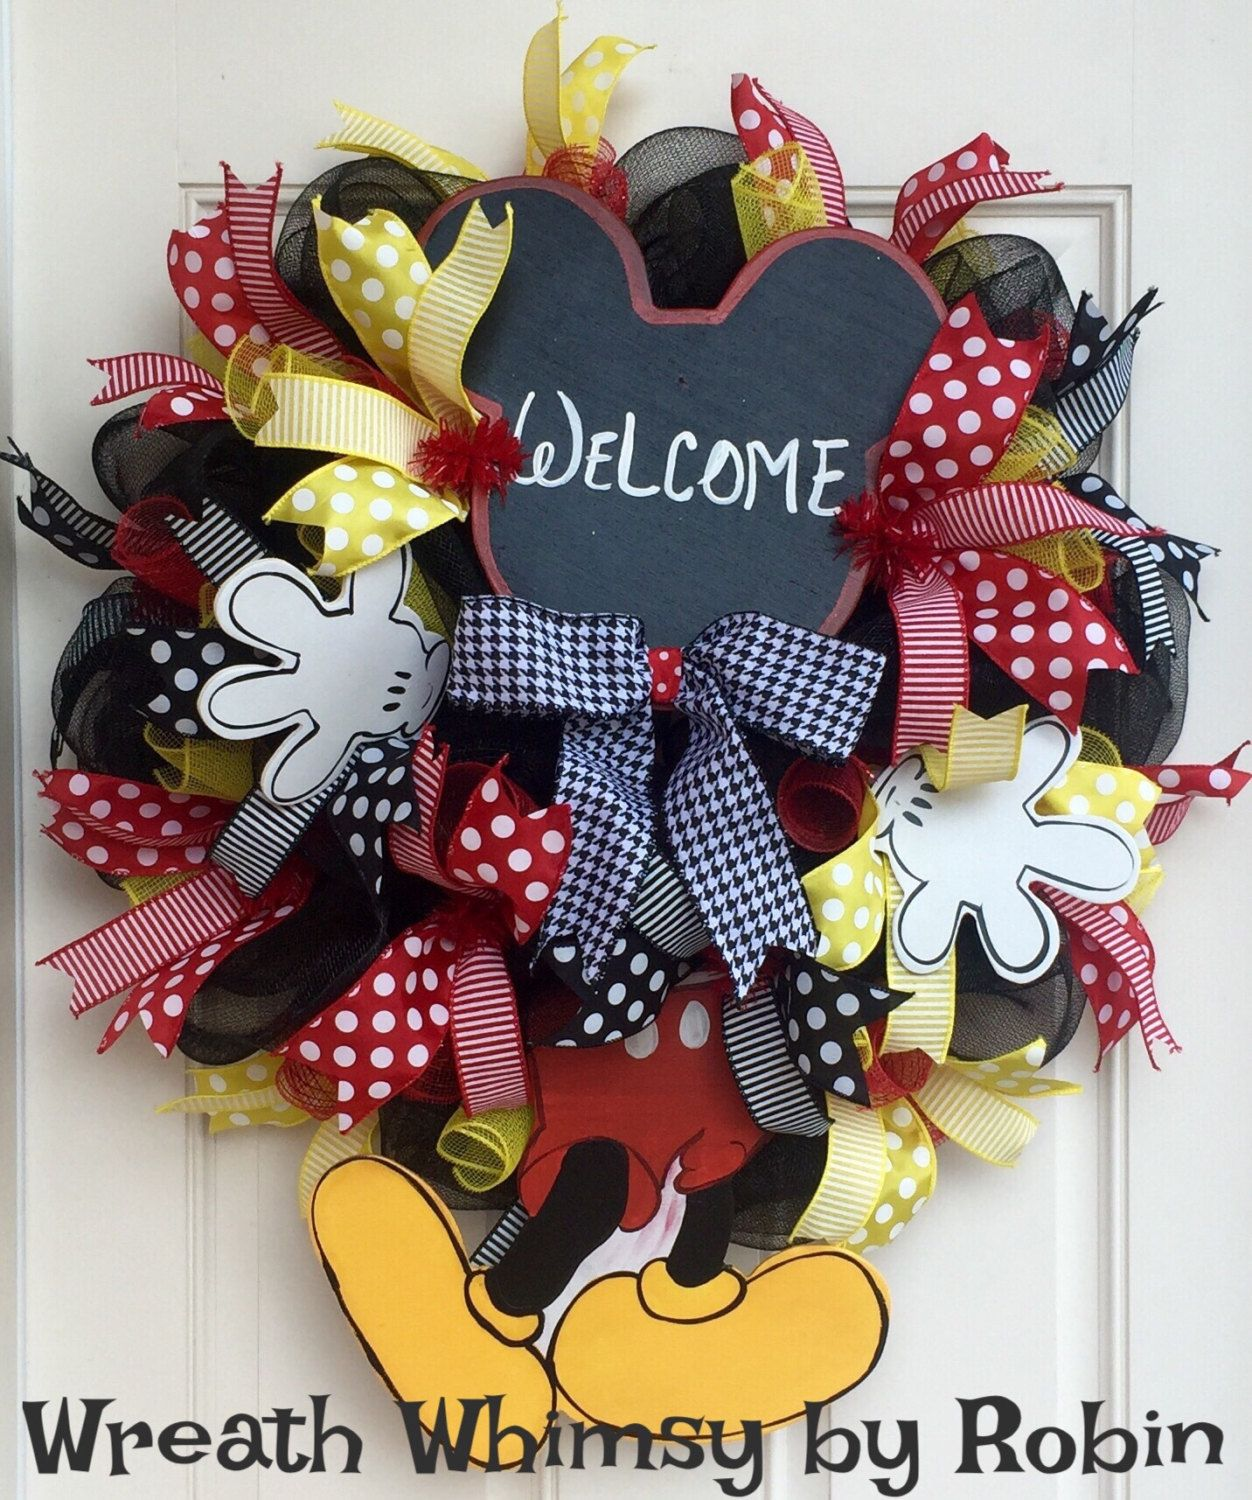 Handmade christmas robin decoration claire hurd design - Mickey Mouse Inspired Deco Mesh Welcome Wreath Hand Painted Mickey Mouse Inspired Decor Front Door Wreath Disney Inspired Decor